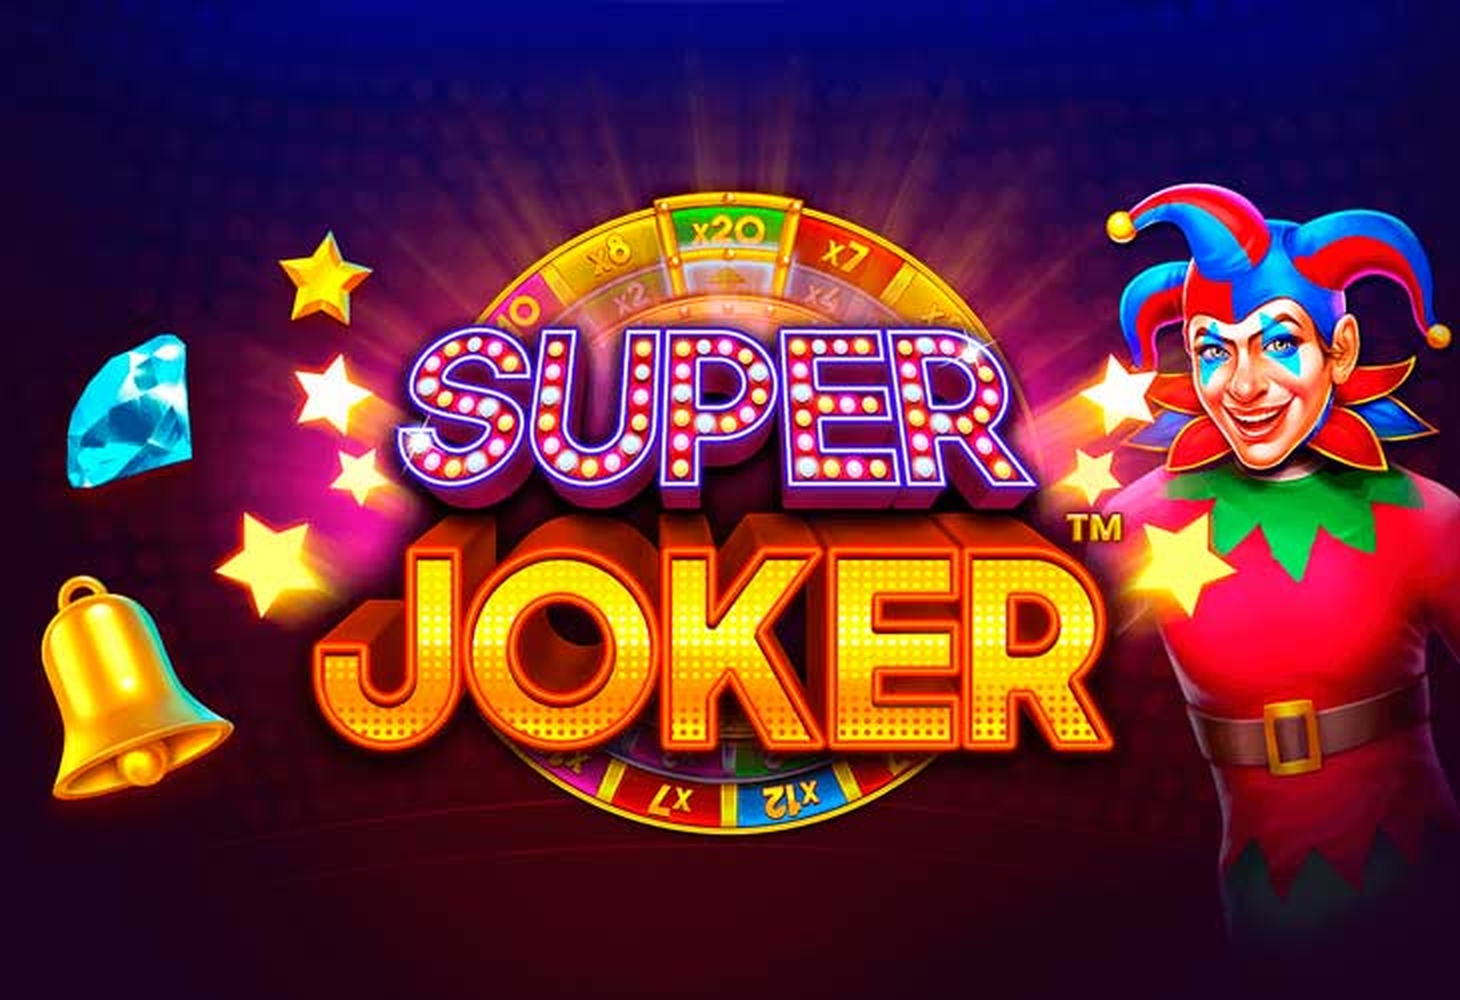 Win Money in Super Joker (Bwin) Free Slot Game by BwinParty